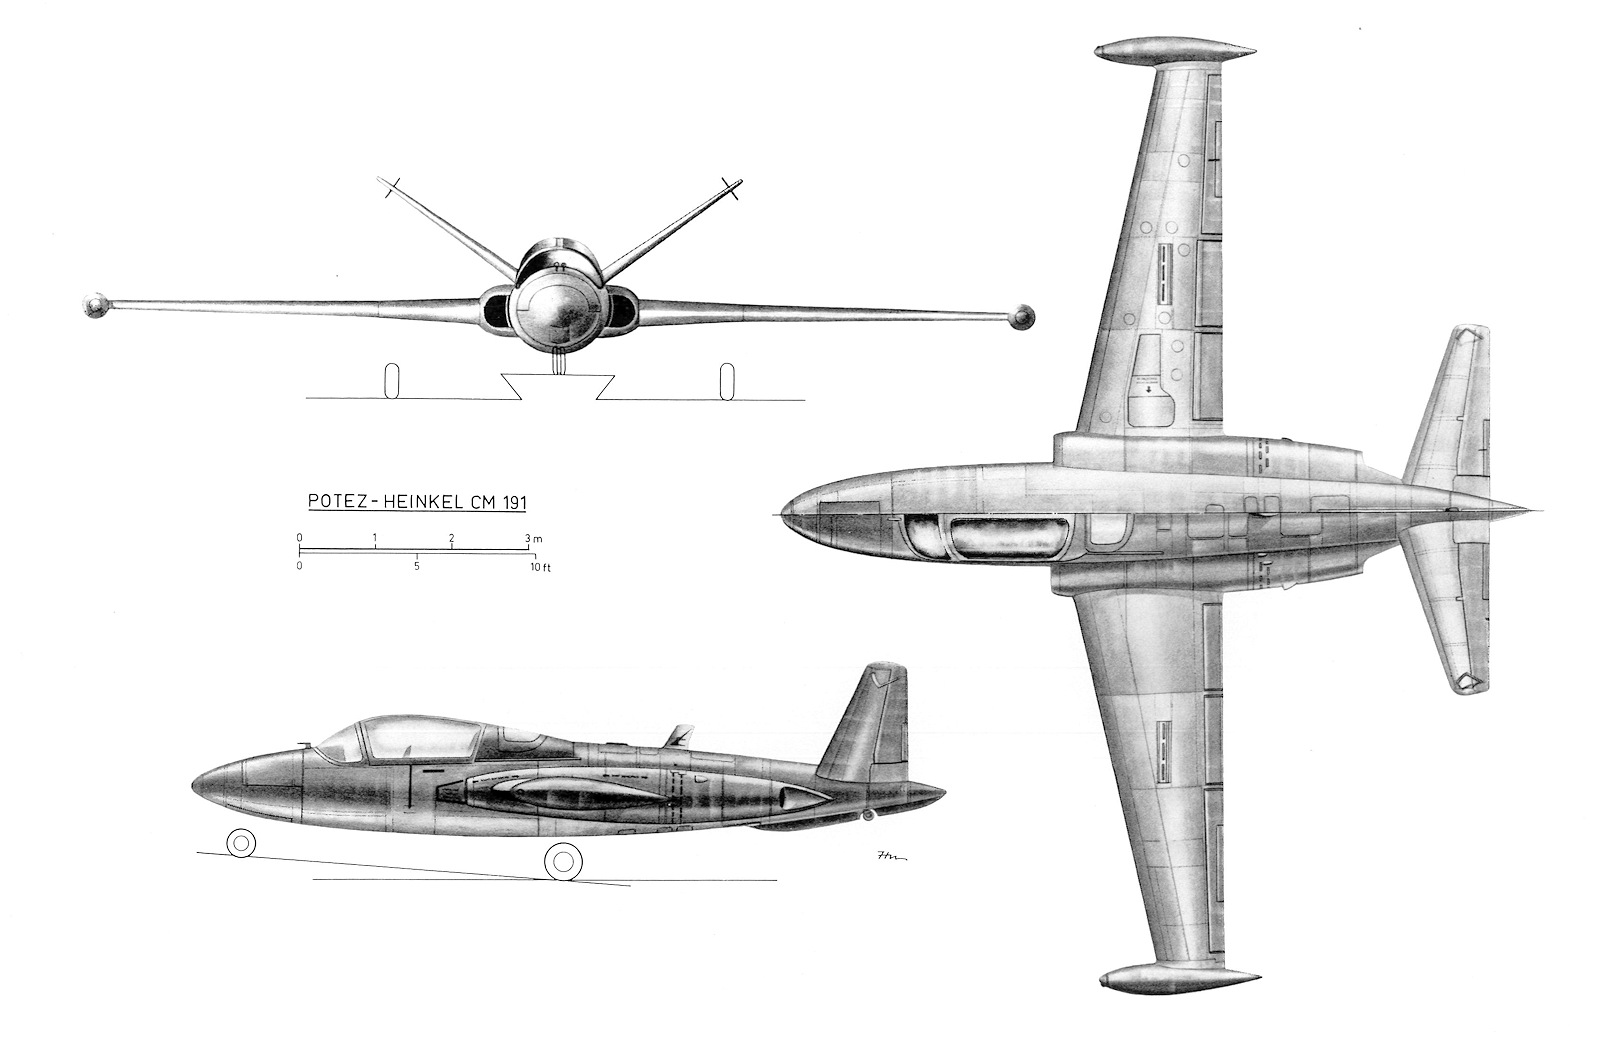 Fouga Four Place Cm 191